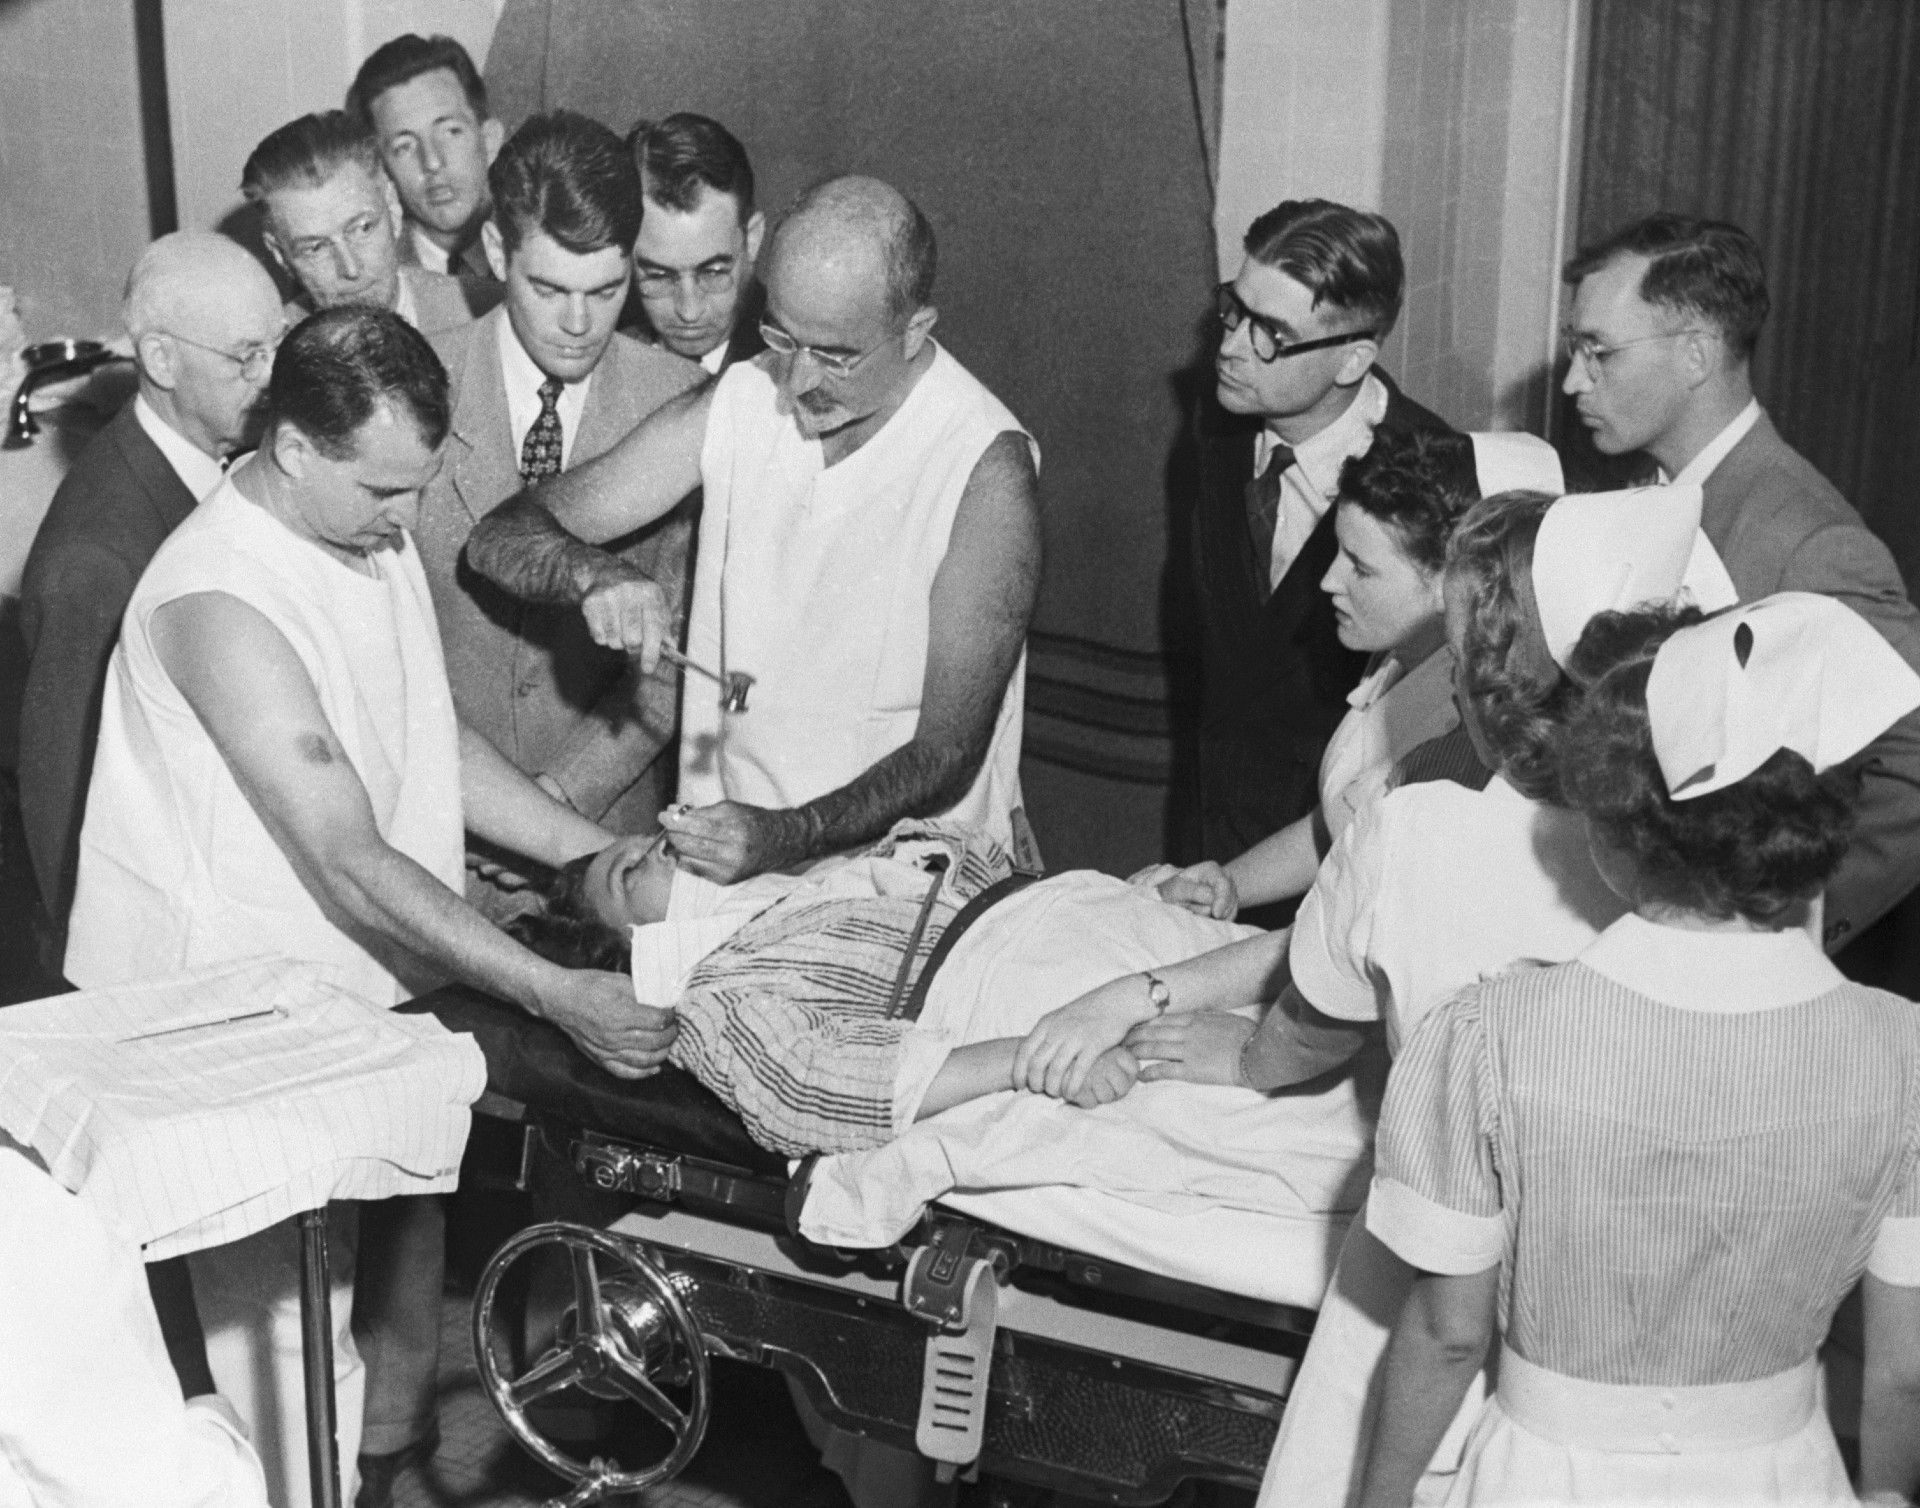 Walter Freeman demonstrating his transorbital lobotomy technique in 1949.